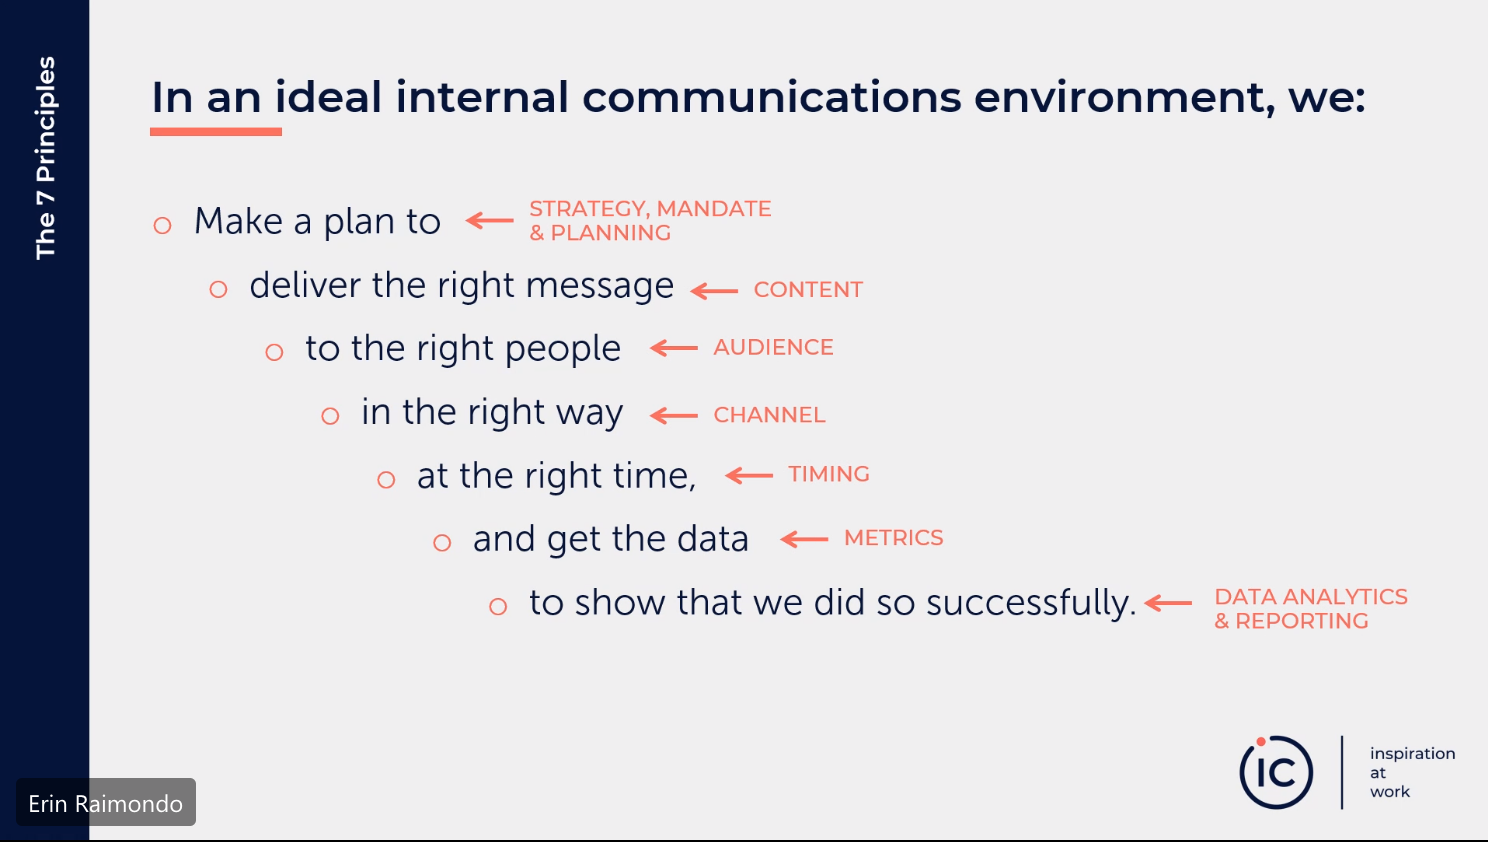 The 7 principles of internal communications